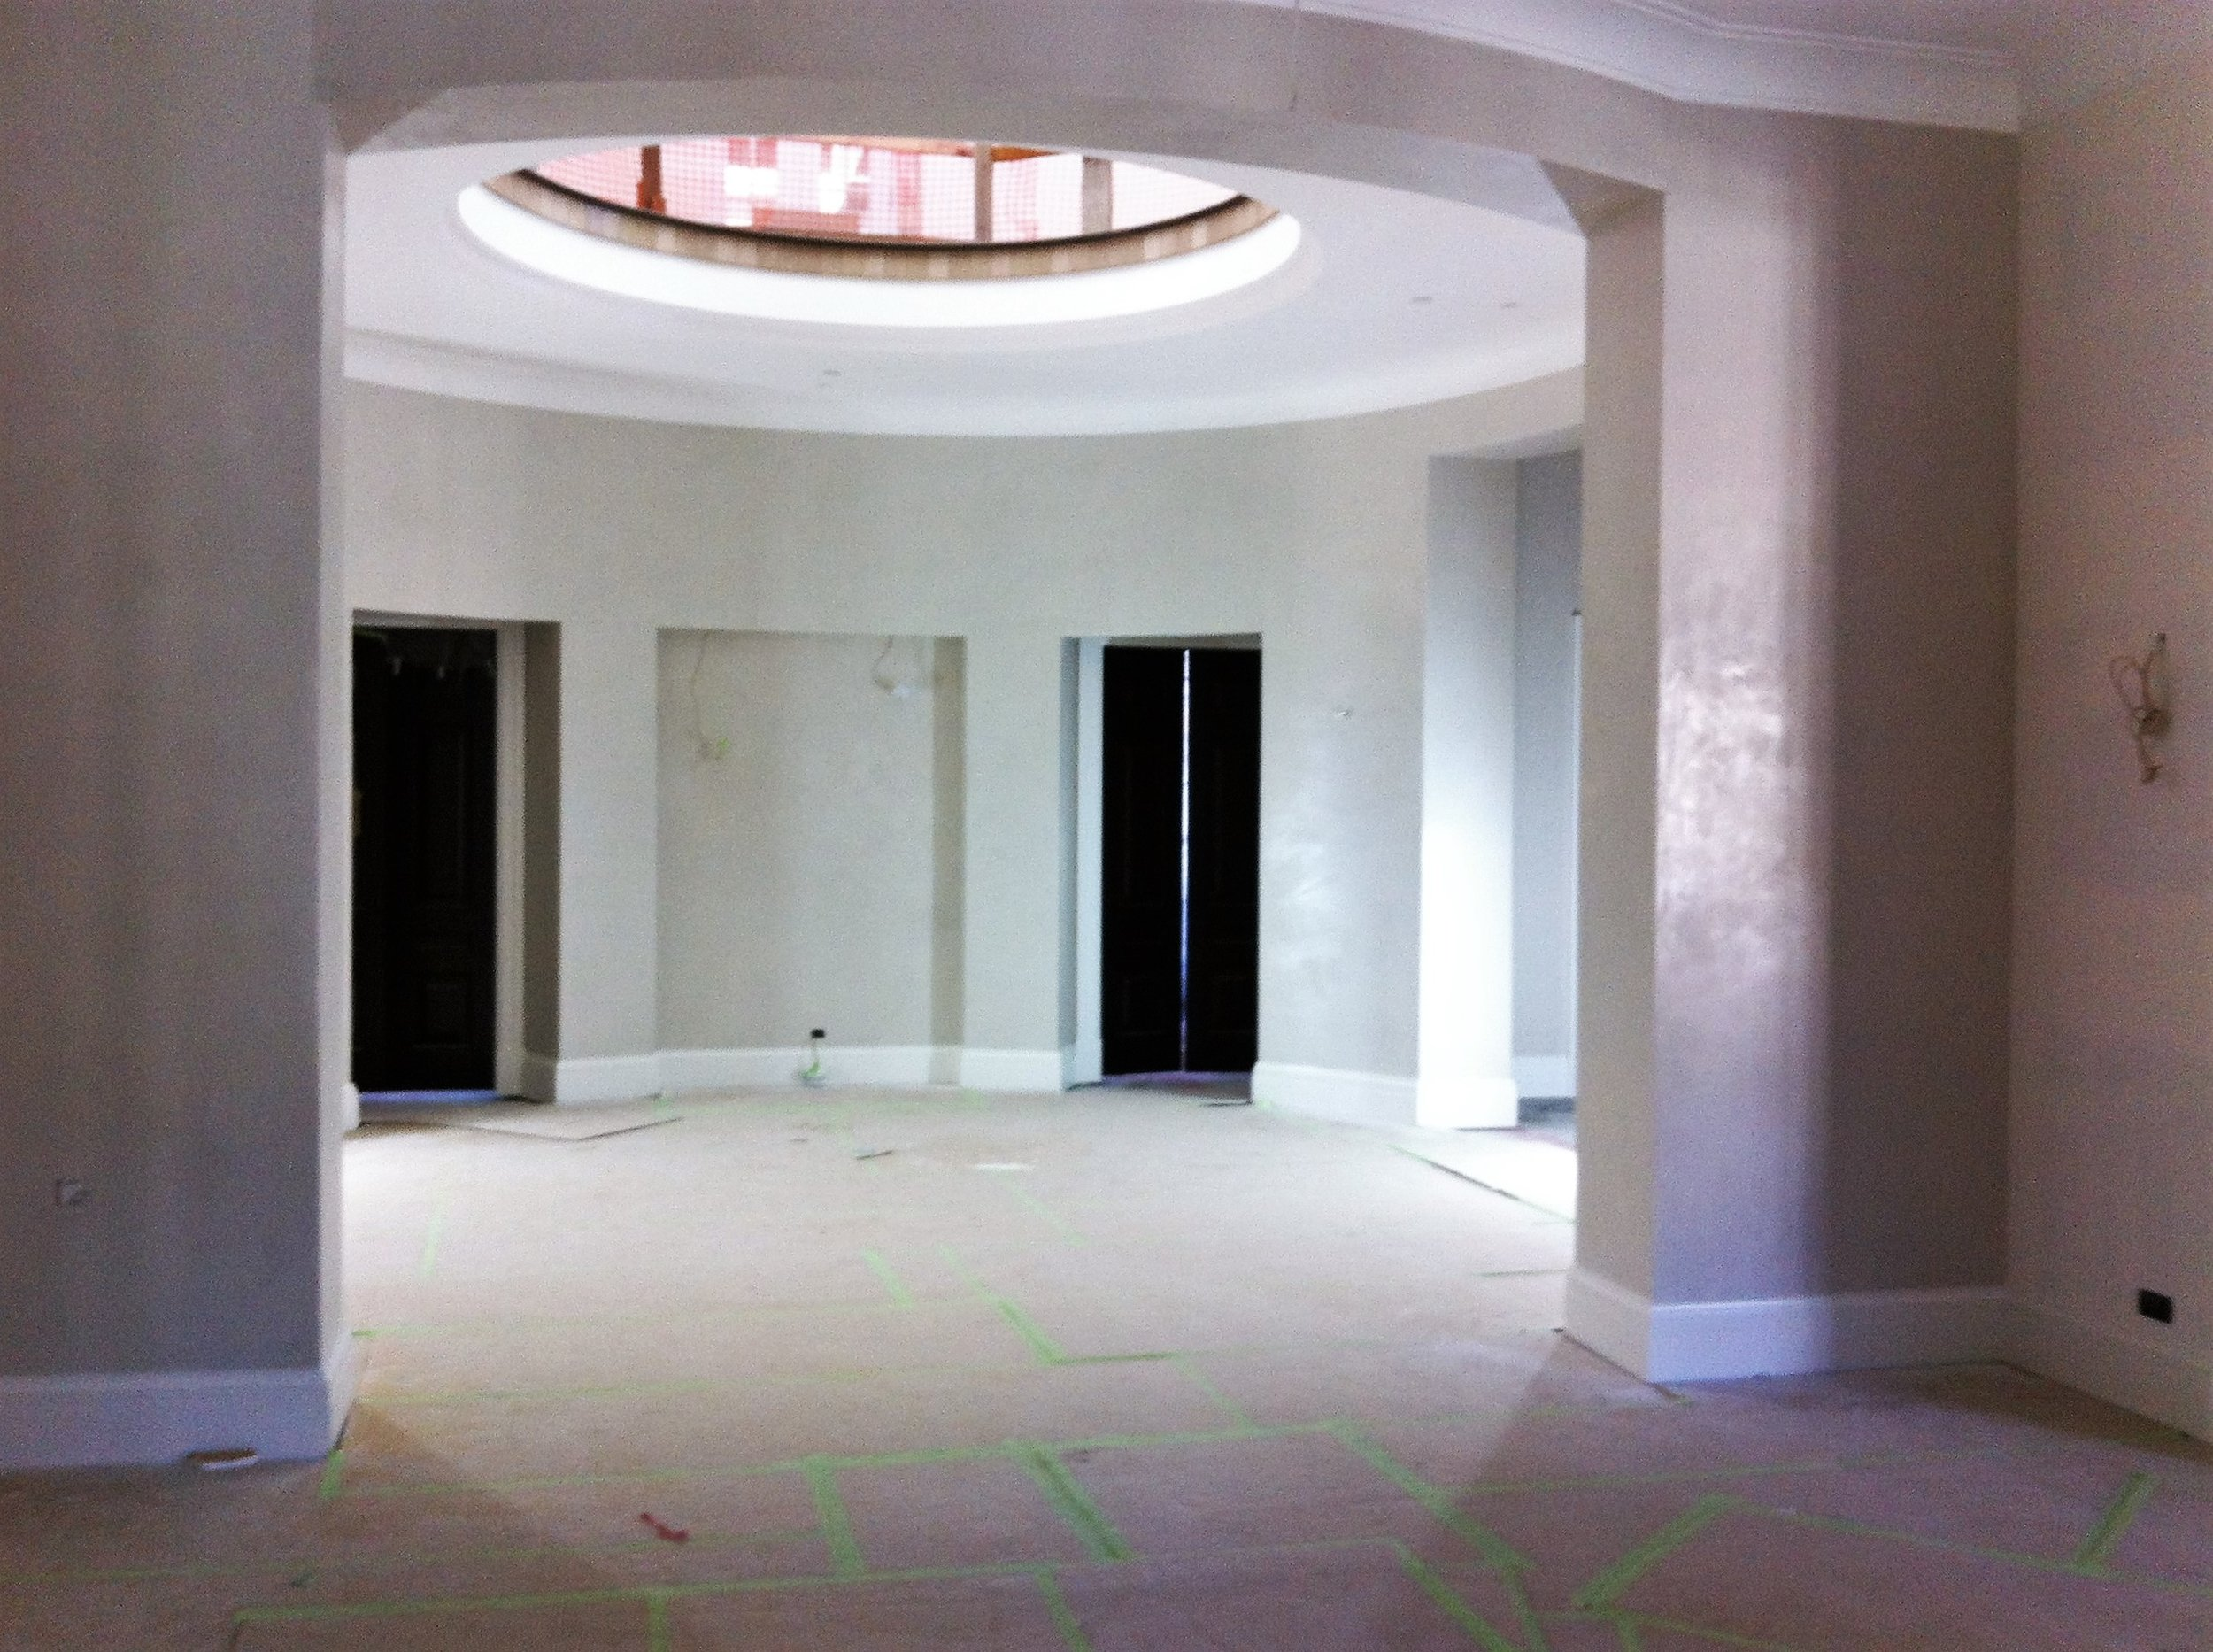 Venetian or Fresco plaster for a South Island residence.